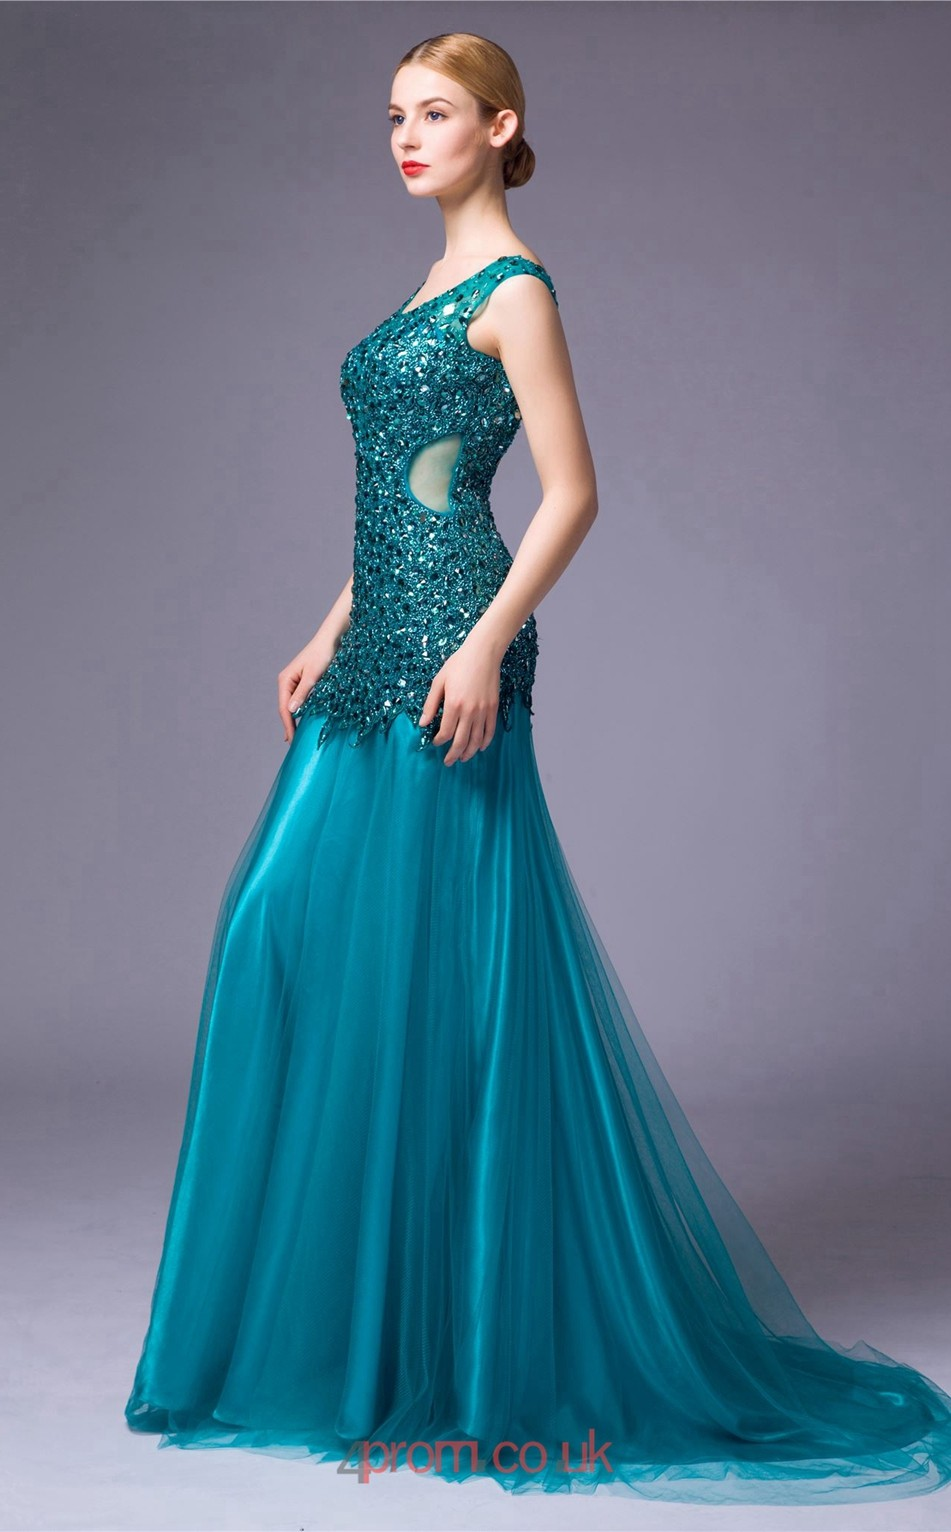 Turquoise Tulle Lace Mermaid V Neck Floor Length Prom